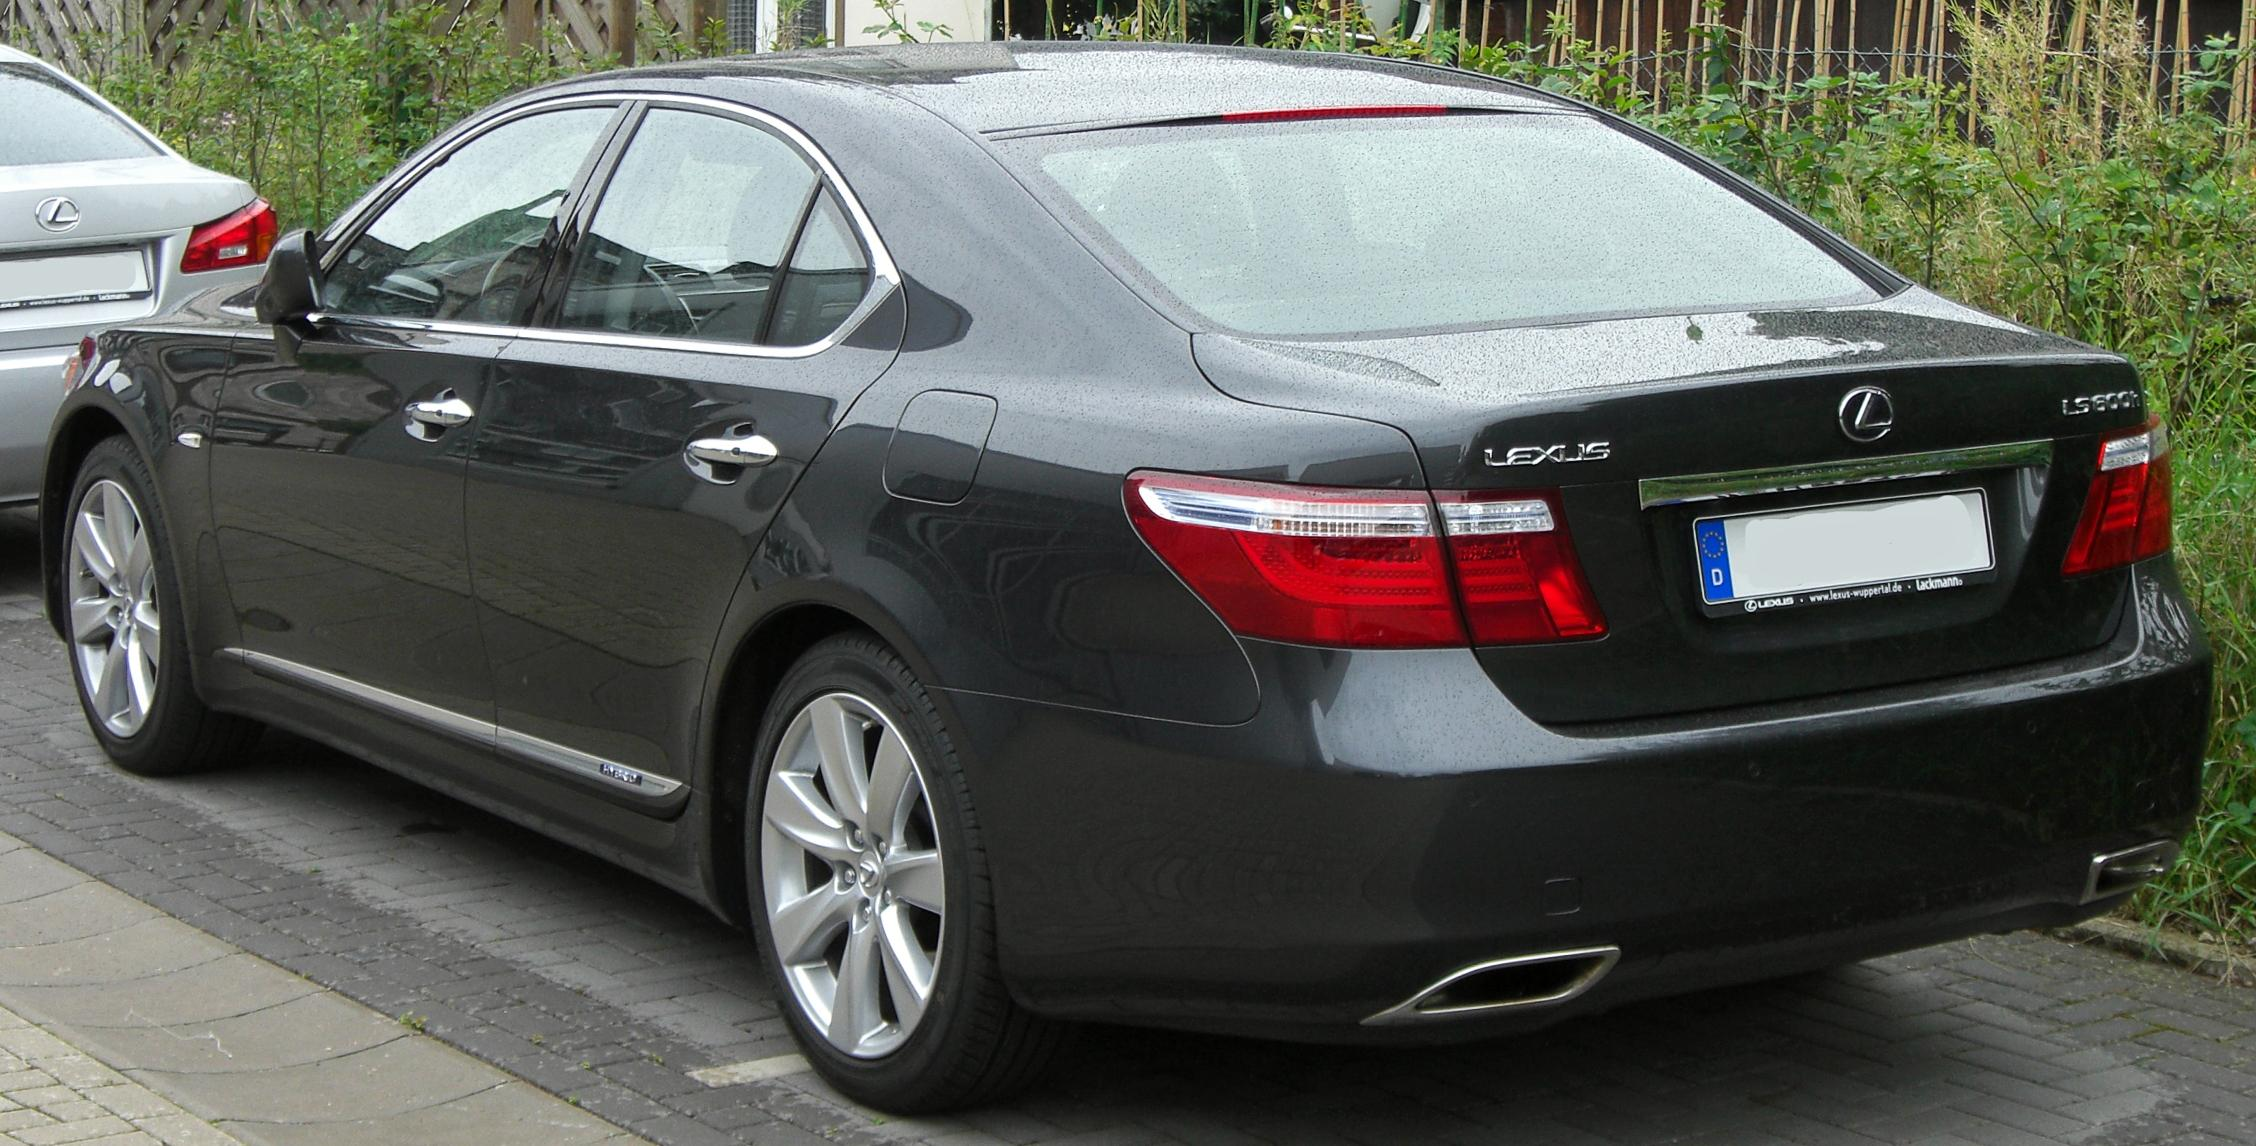 File:Lexus LS 600h rear.JPG - Wikimedia Commonsls lolitas